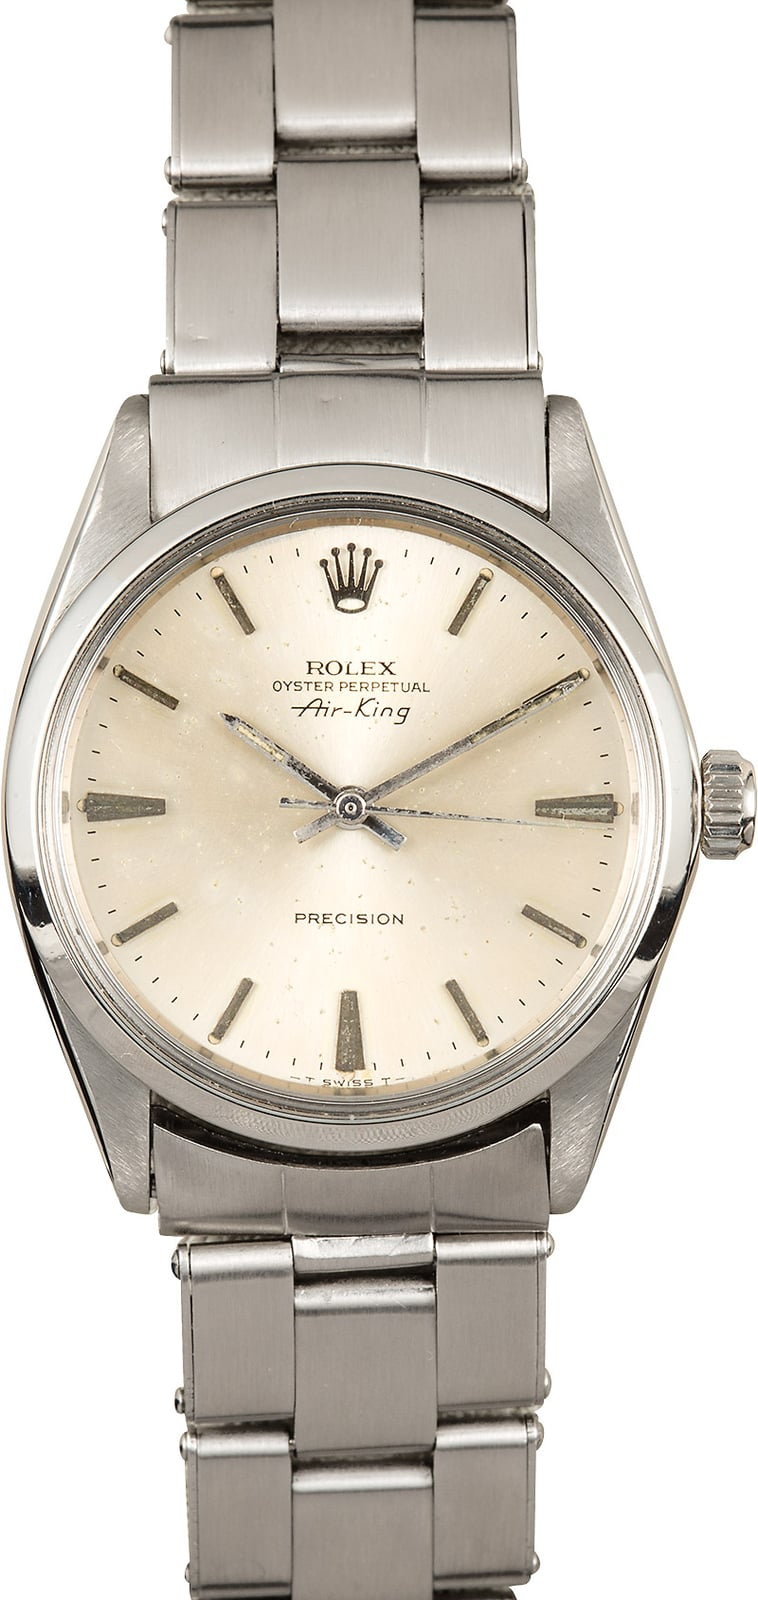 Vintage rolex air king 5500 silver dial for Rolex air king